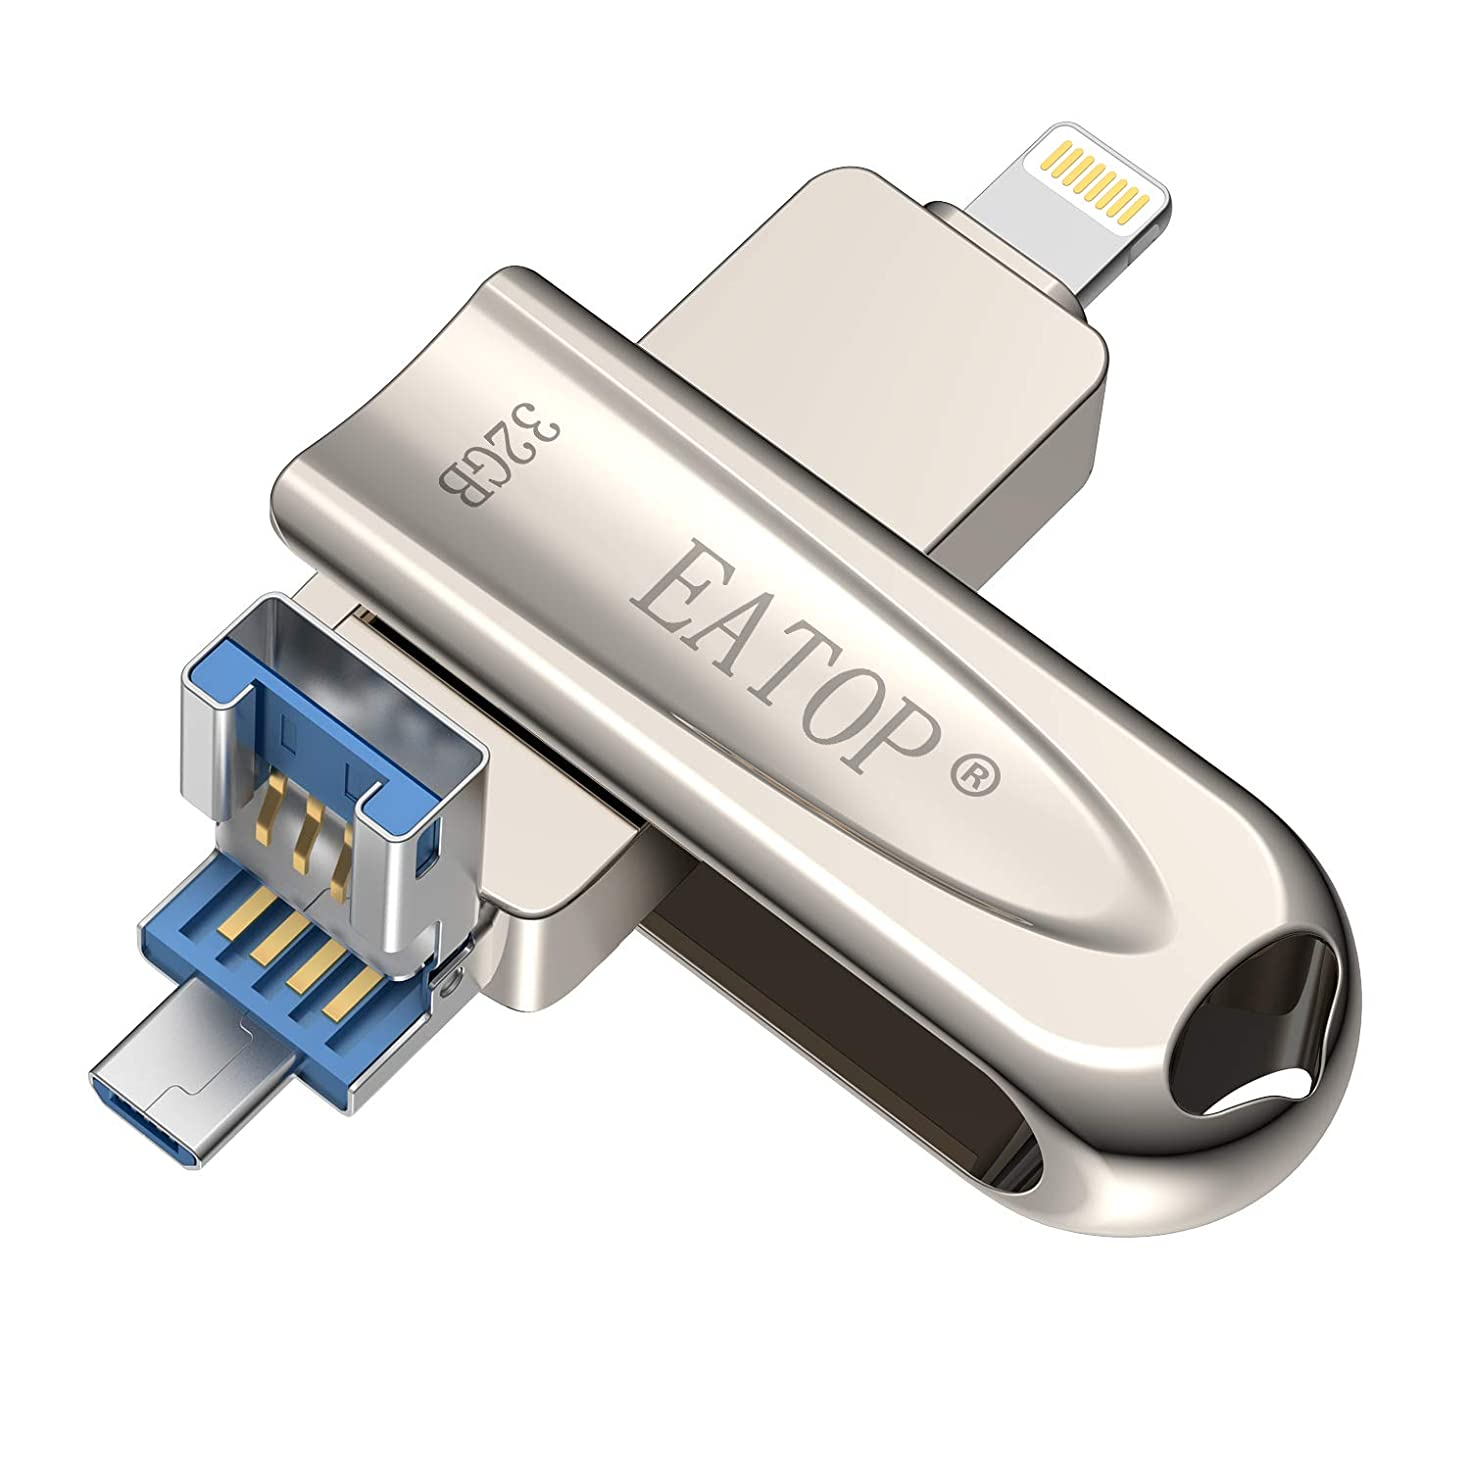 EATOP USB 3.0 Flash Drive 32GB iPhone Flash Drive for iPhone X XR XS MAX, Photo Stick for iPhone 6, iPhone 6 Plus, iPhone 8 Plus & iPad, iPhone Thumb Drive for iOS Android and Computer (Silver)